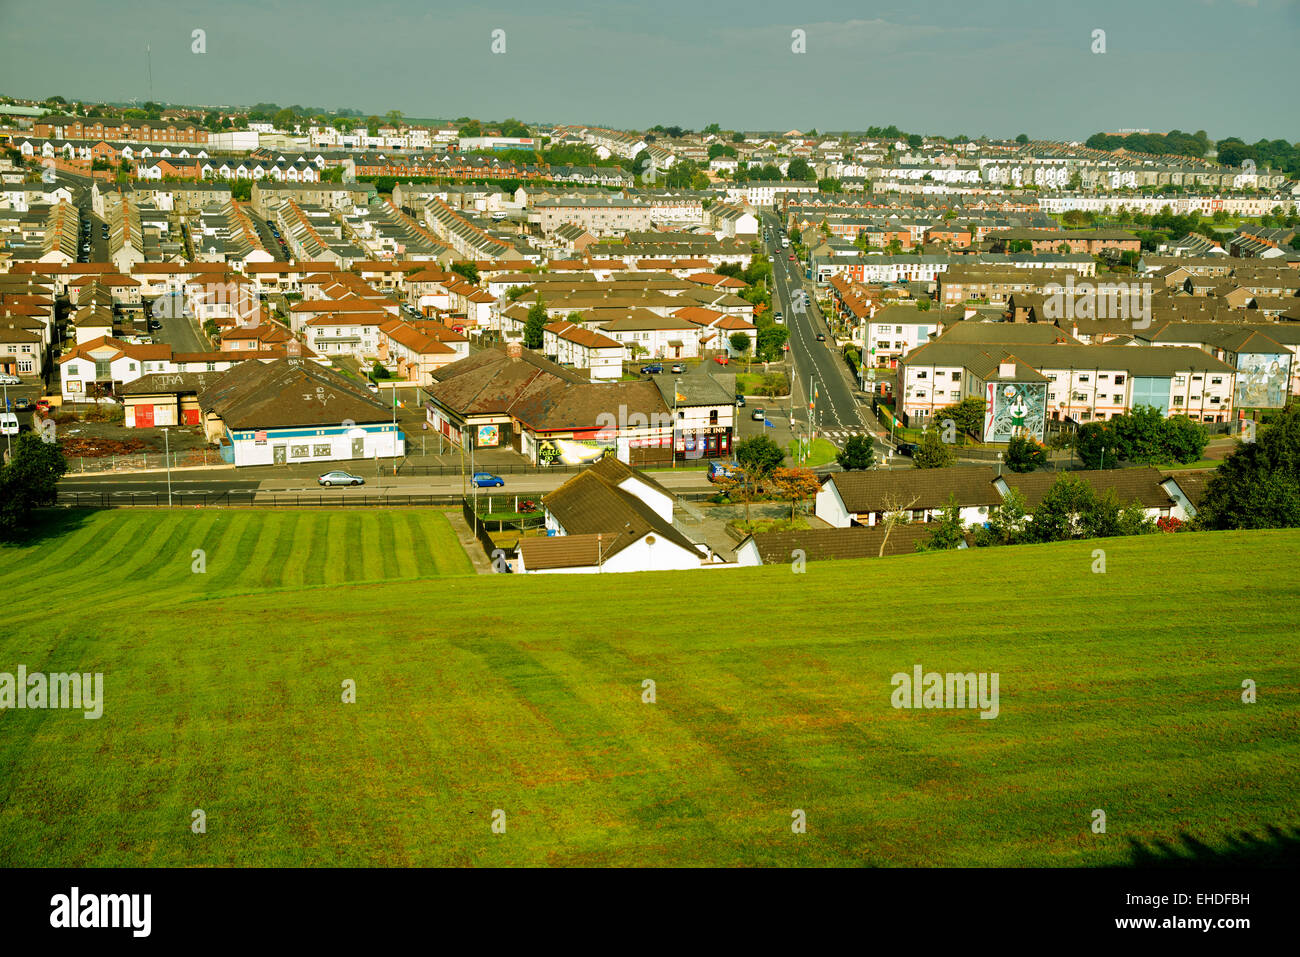 Derry/Londonderry. Northern Ireland - Stock Image